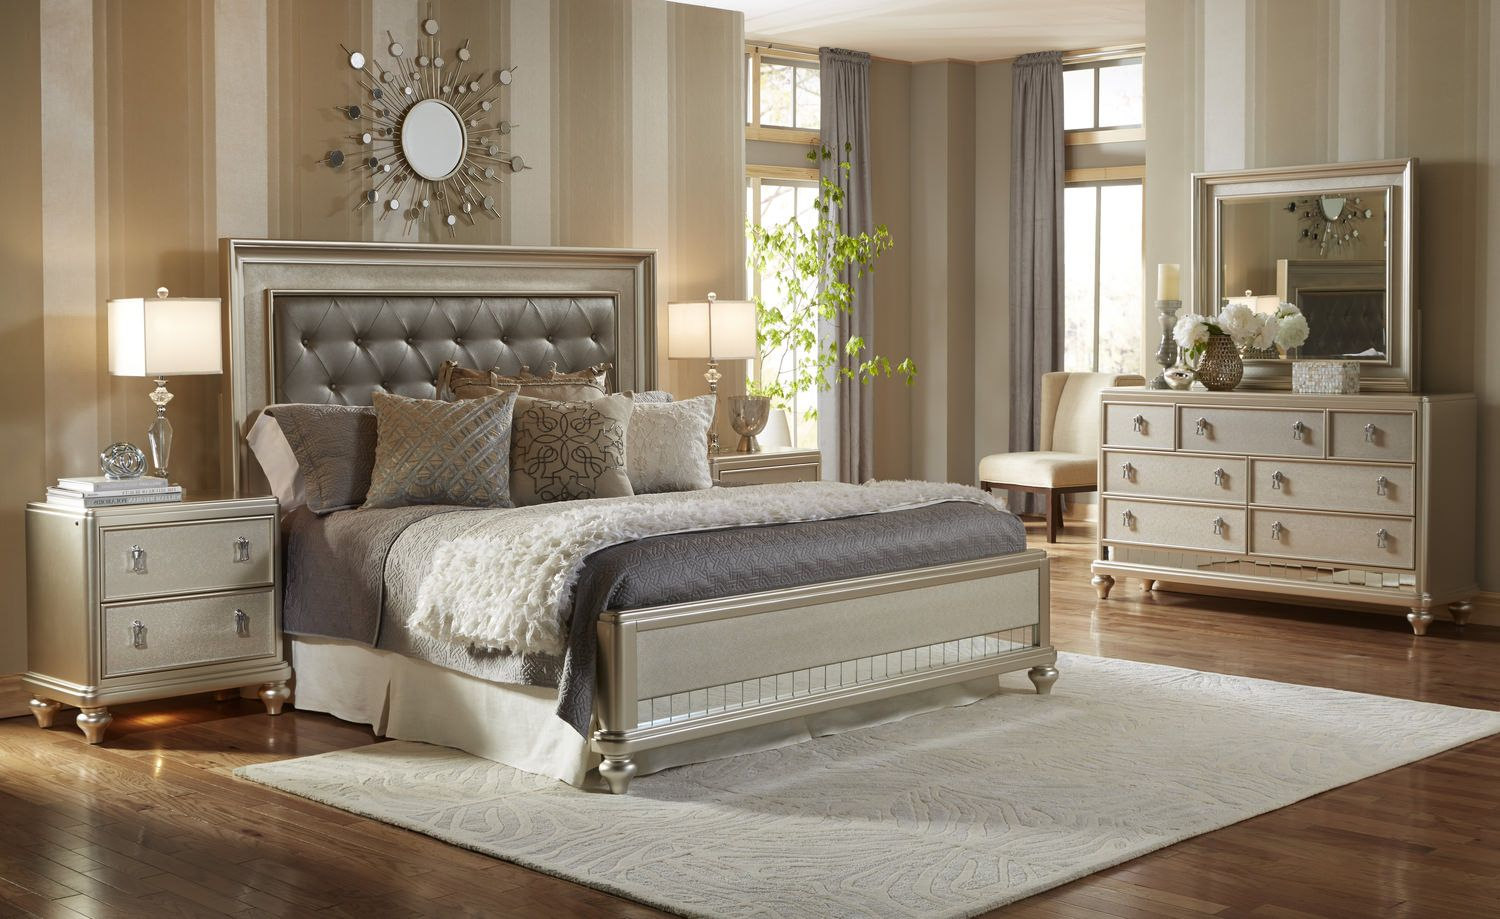 Zsa Zsa Queen Bedroom Suite Bedroom Sets Queen Diva Bedroom Set California King Bedroom Sets